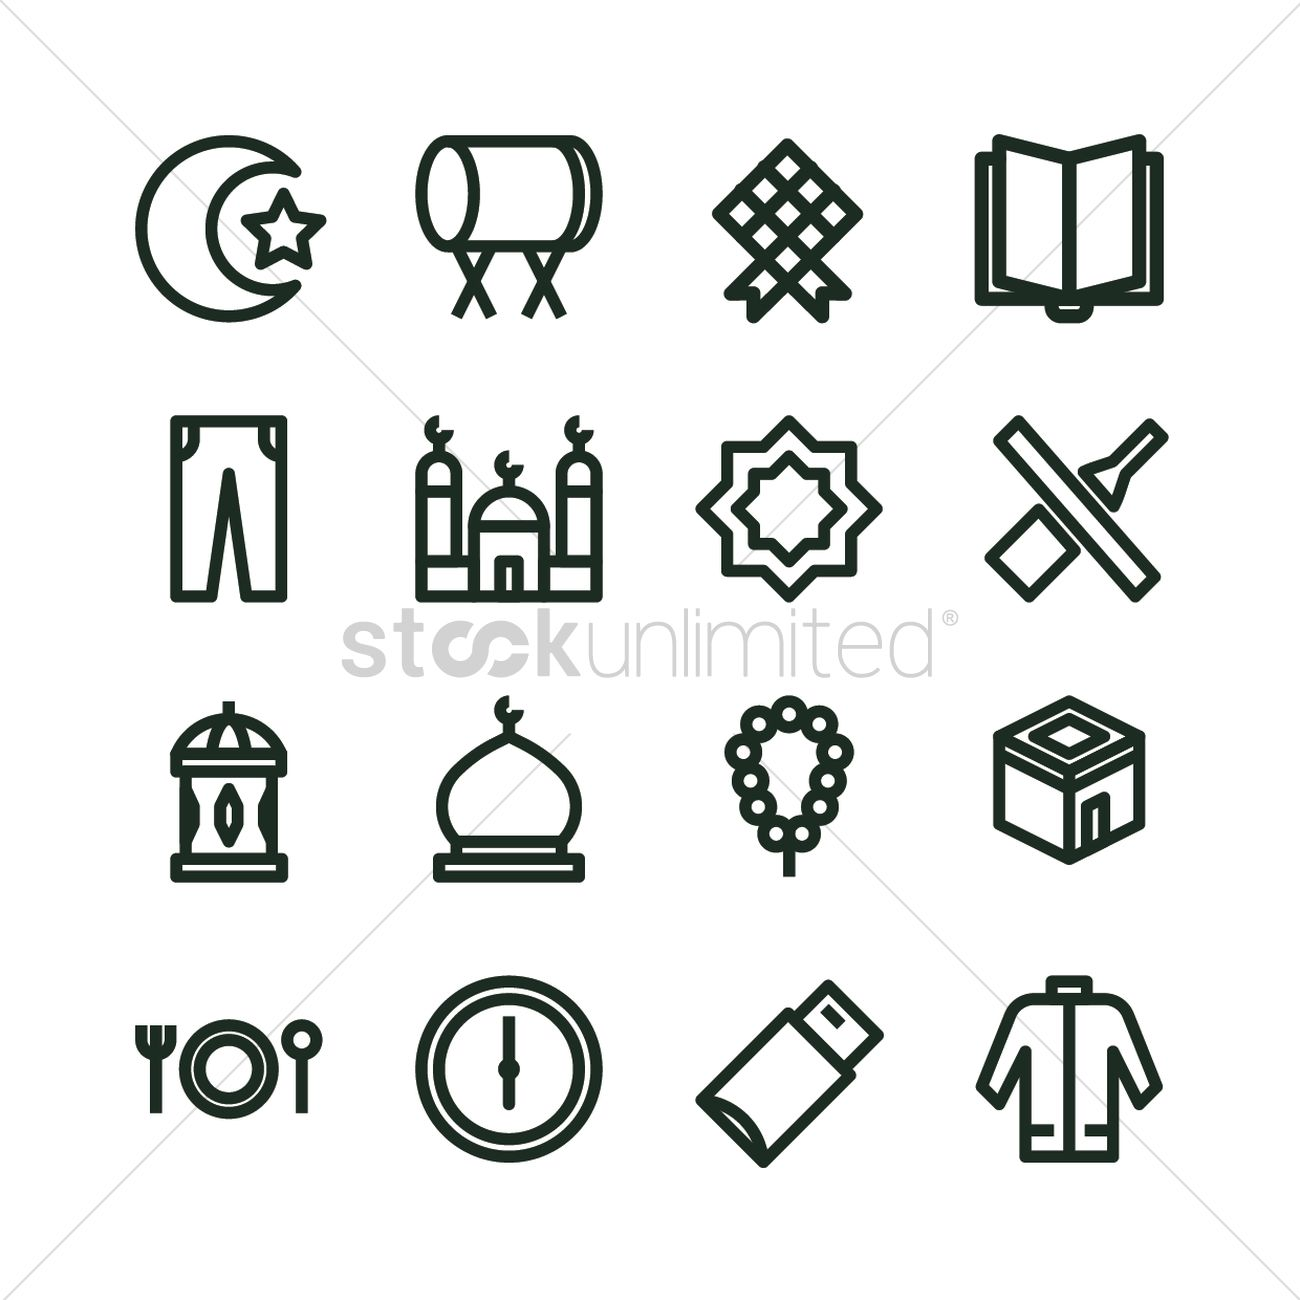 Collection of eid icons vector image 2024512 stockunlimited collection of eid icons vector graphic biocorpaavc Images